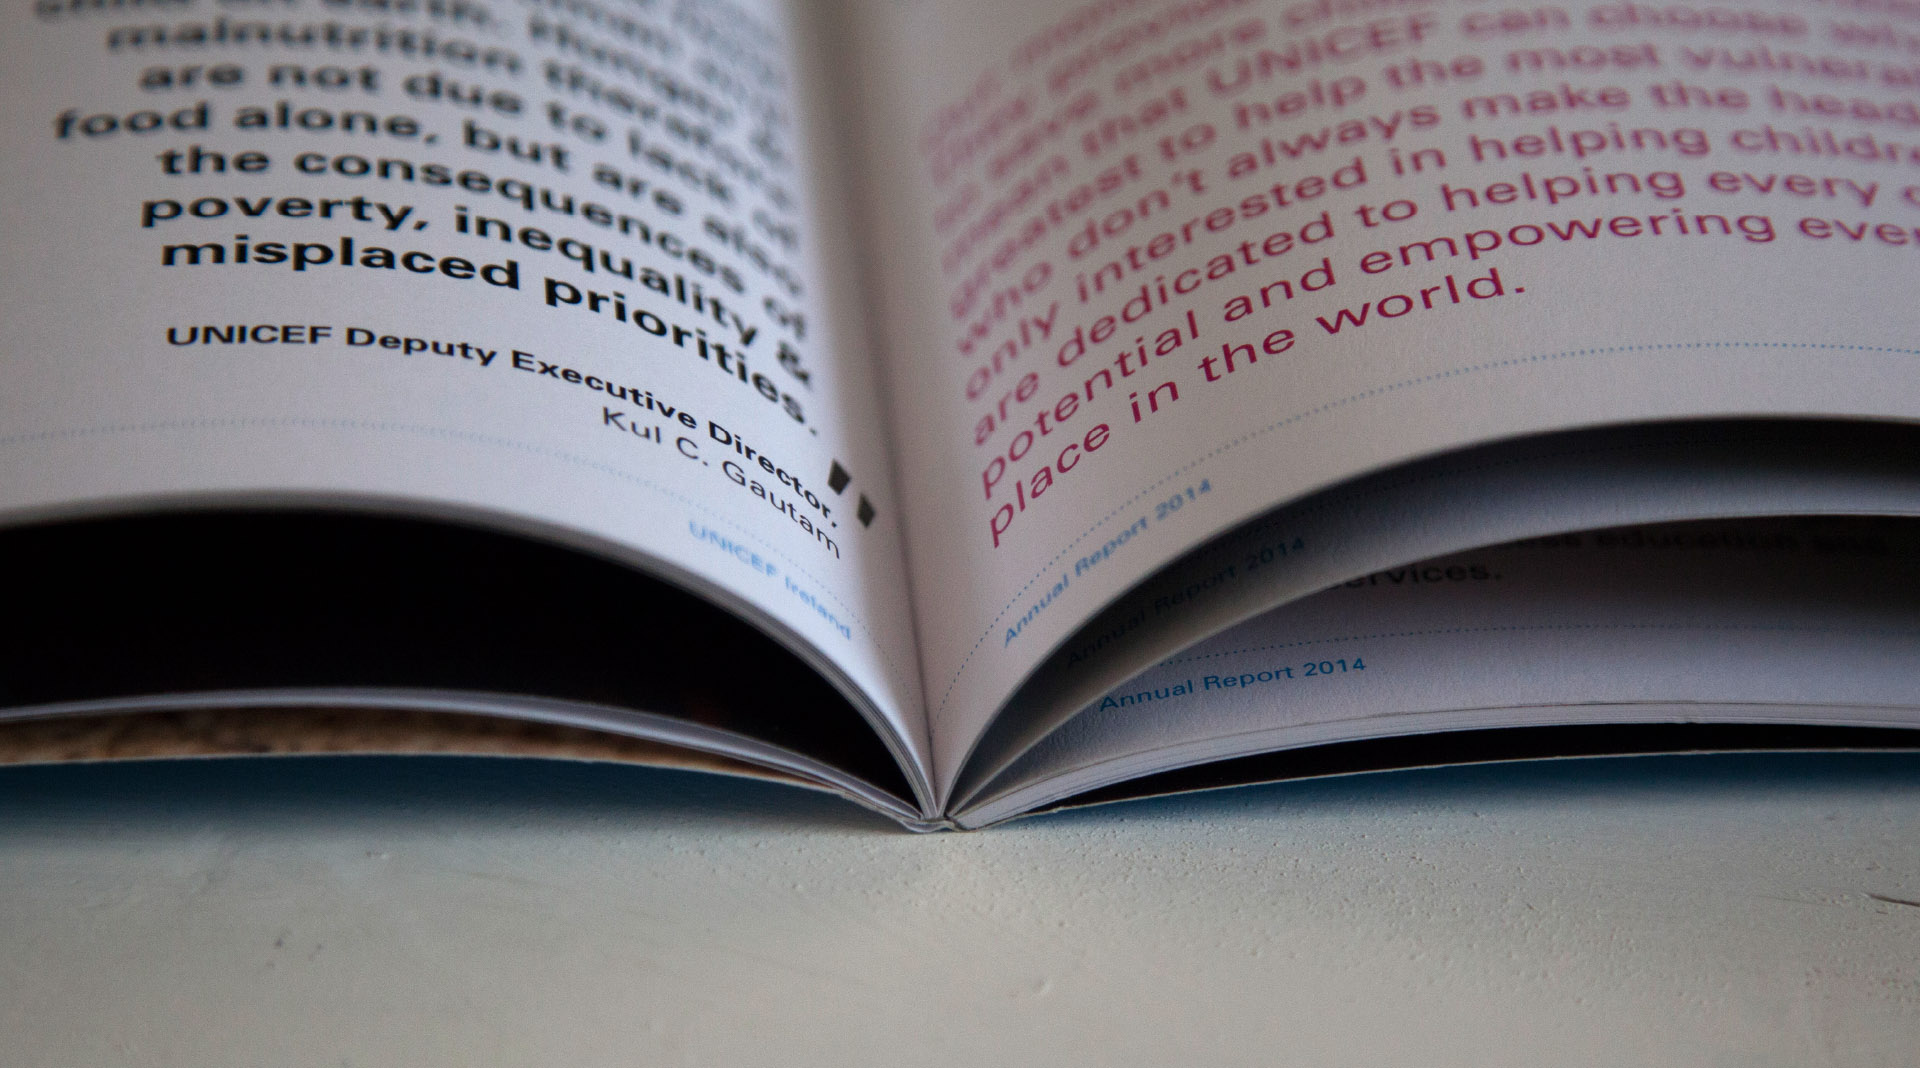 Unicef Annual Reports Book spine detail